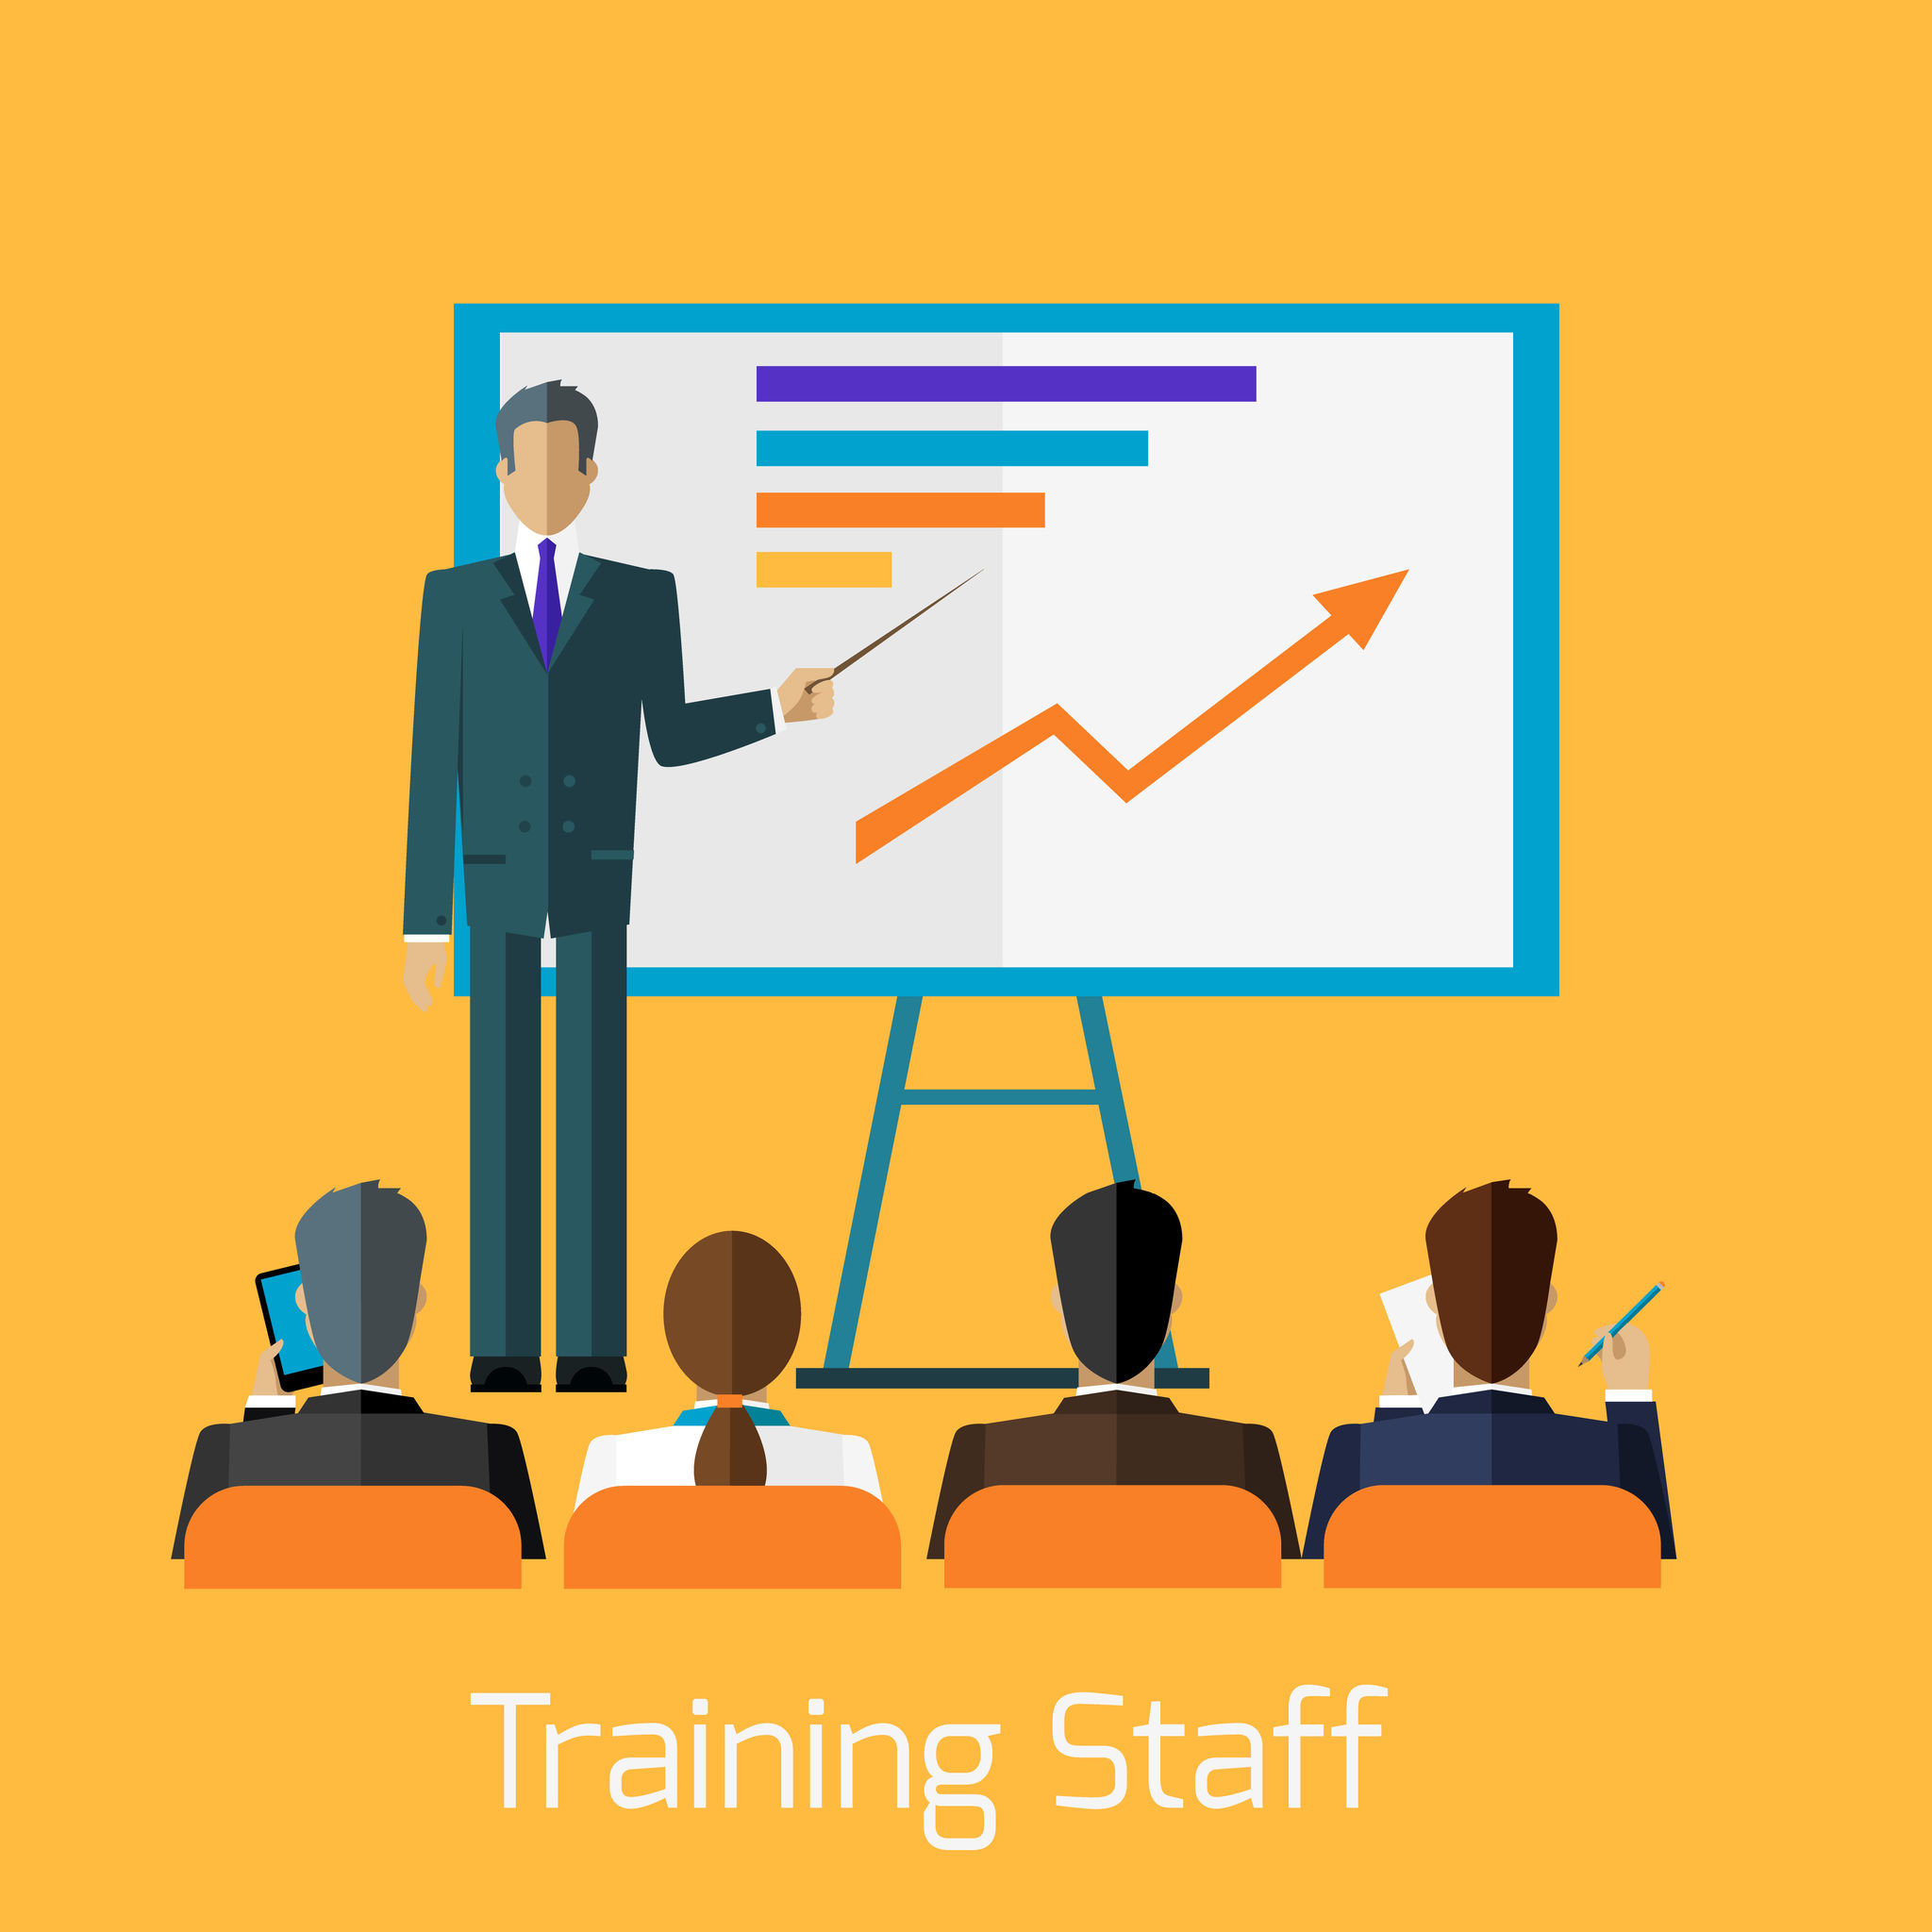 Importance of employee training for a corporation